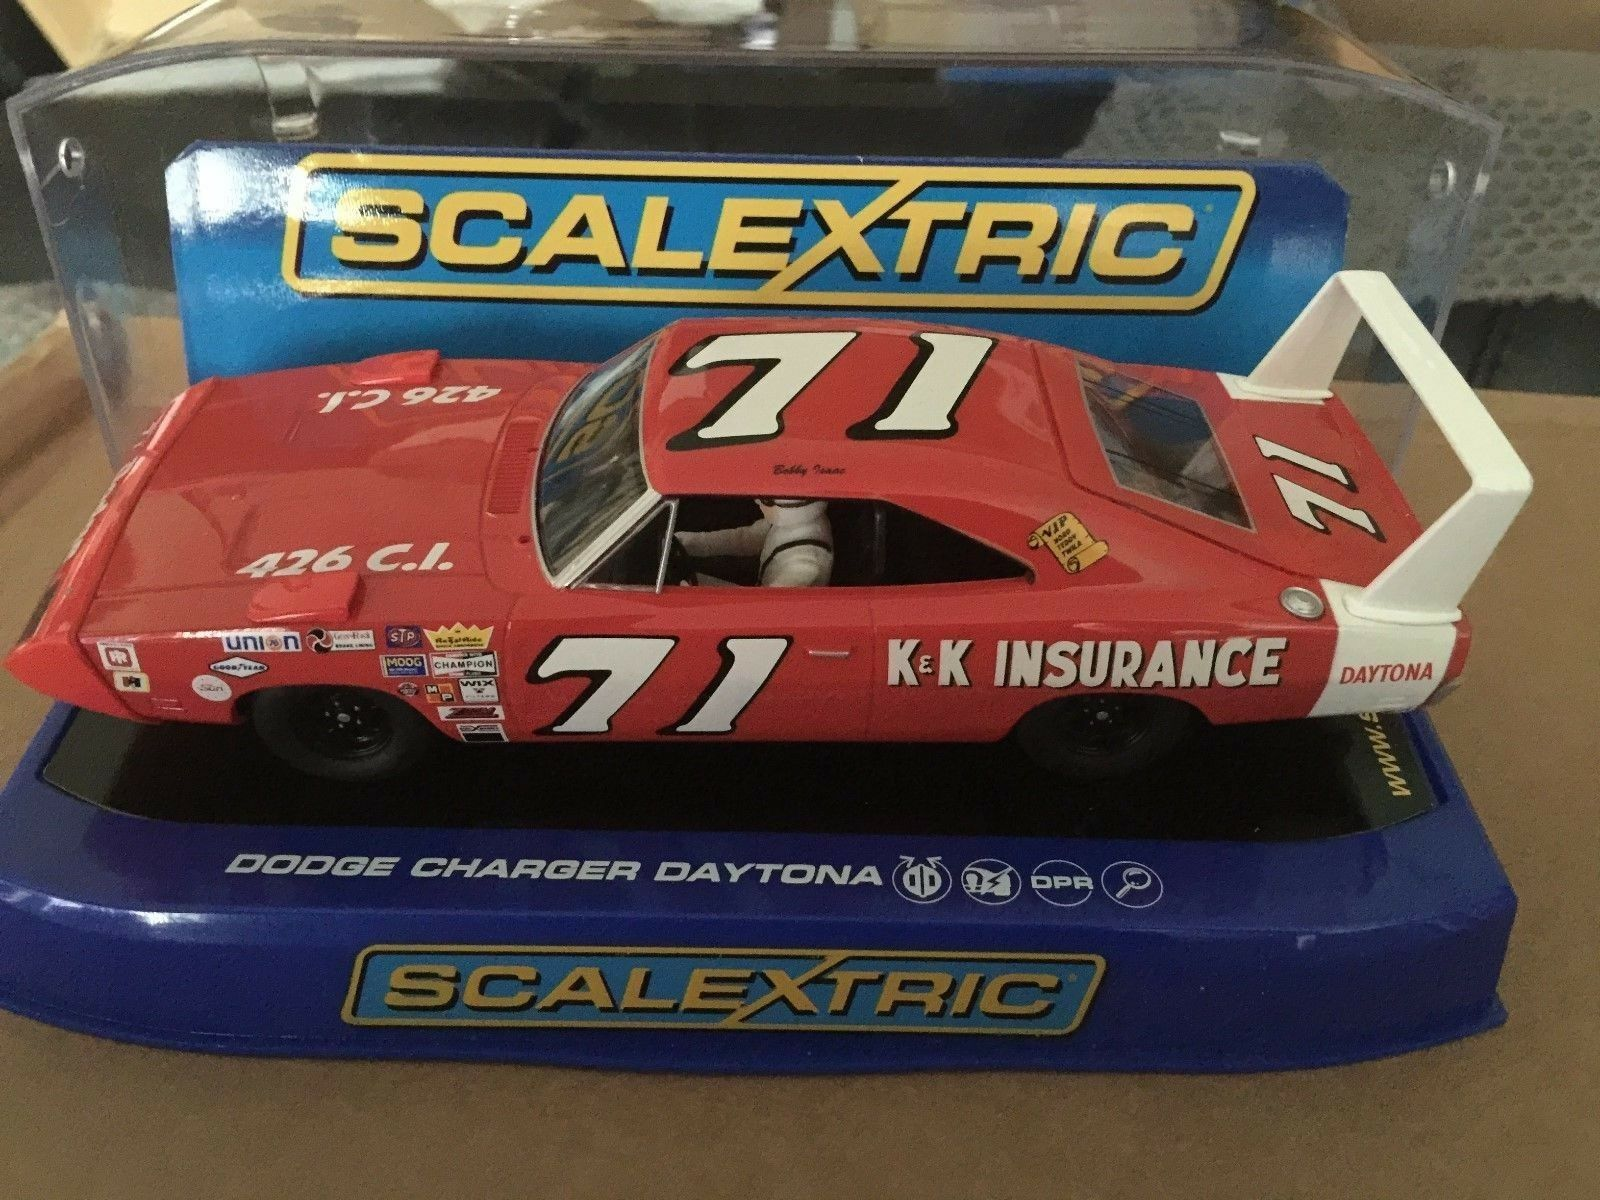 MINT BOXED SCALEXTRIC DODGE CHARGER DAYTONA C3423 USA BOXED VERSION